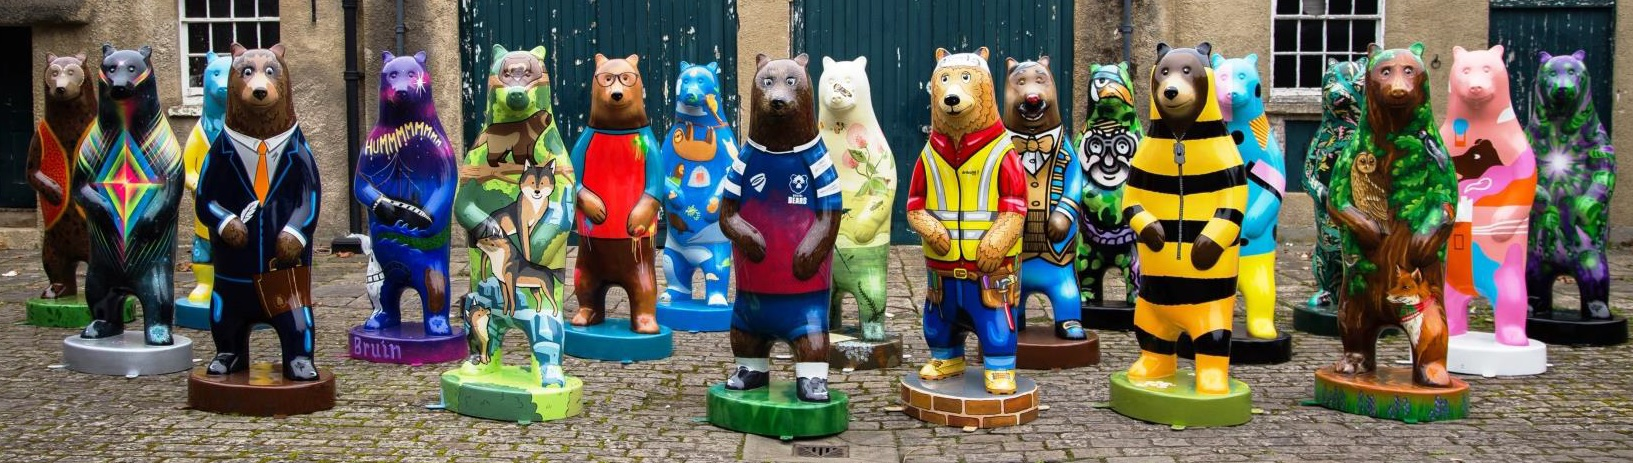 Bristol Zoo Bear Wood Appeal